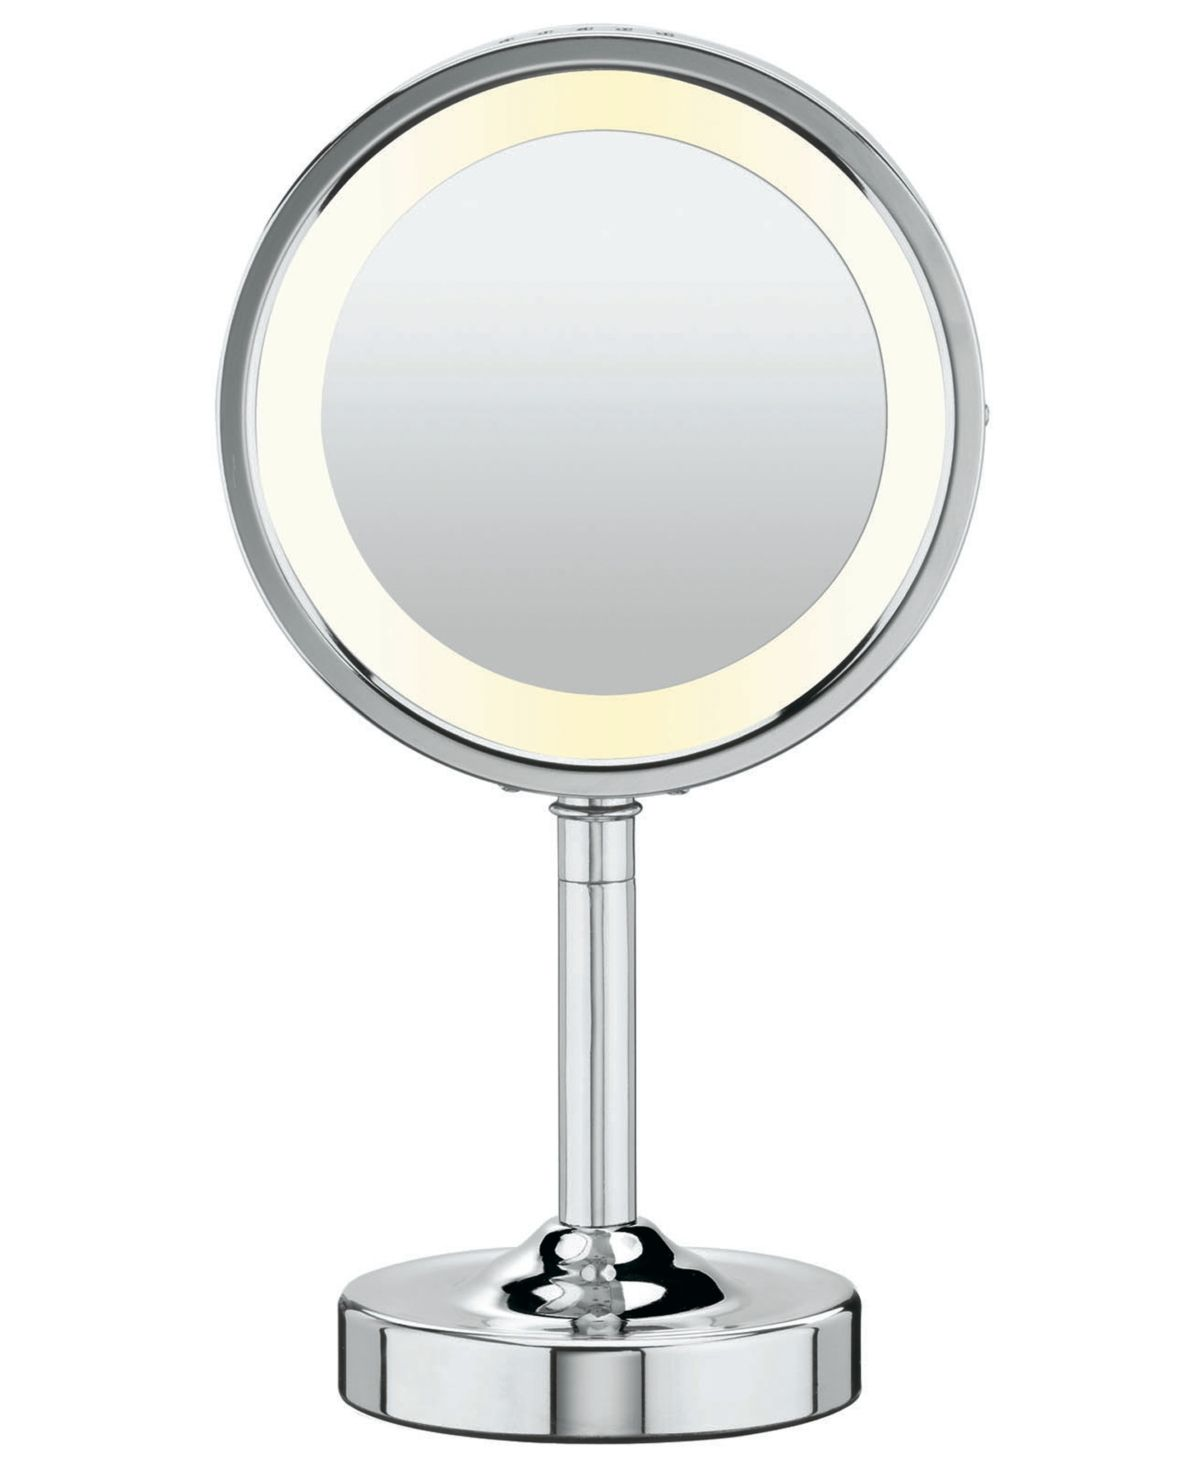 Conair 5x Magnified Lighted Makeup Mirror Reviews Bathroom